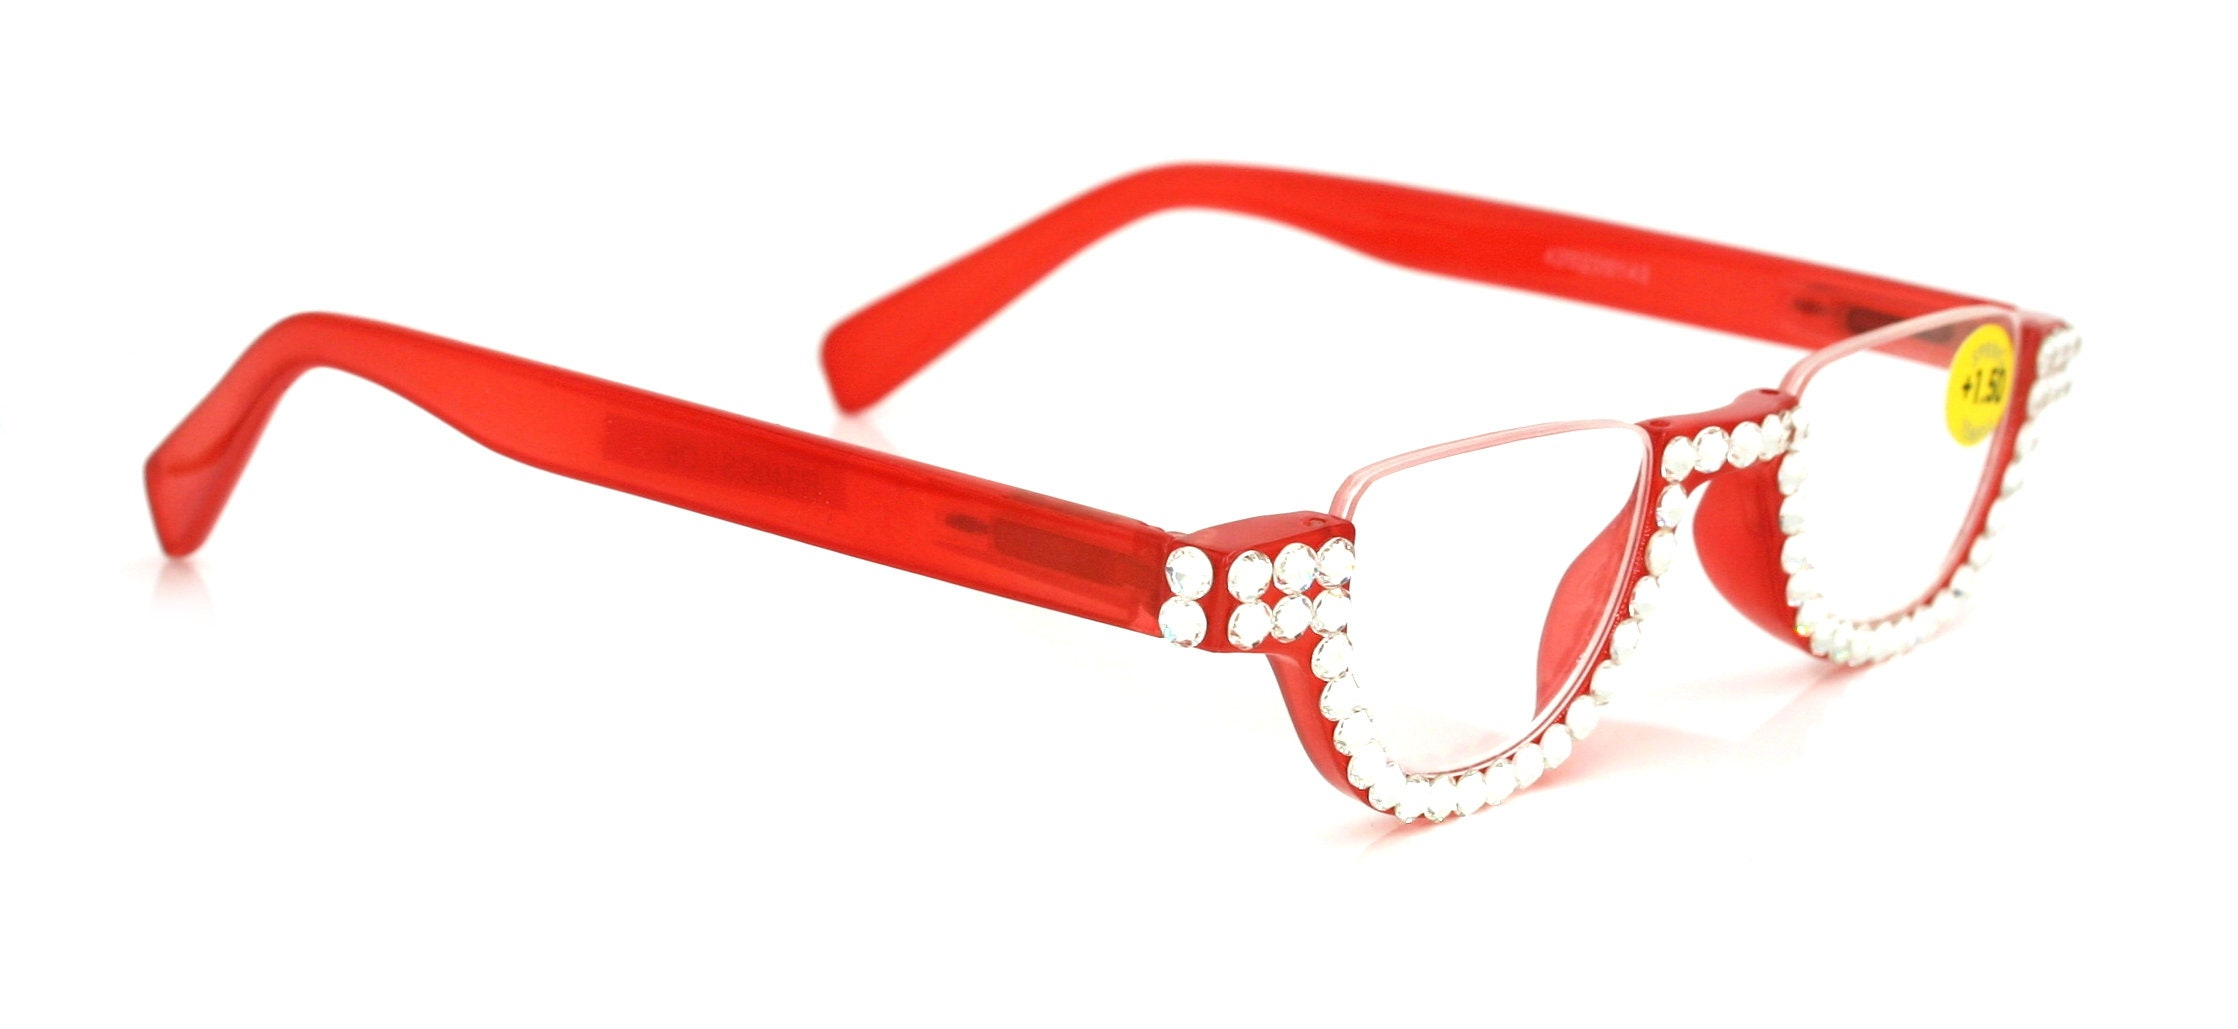 6617f8b9945 Half Moon RED Reading Glasses Women Adorned With Clear